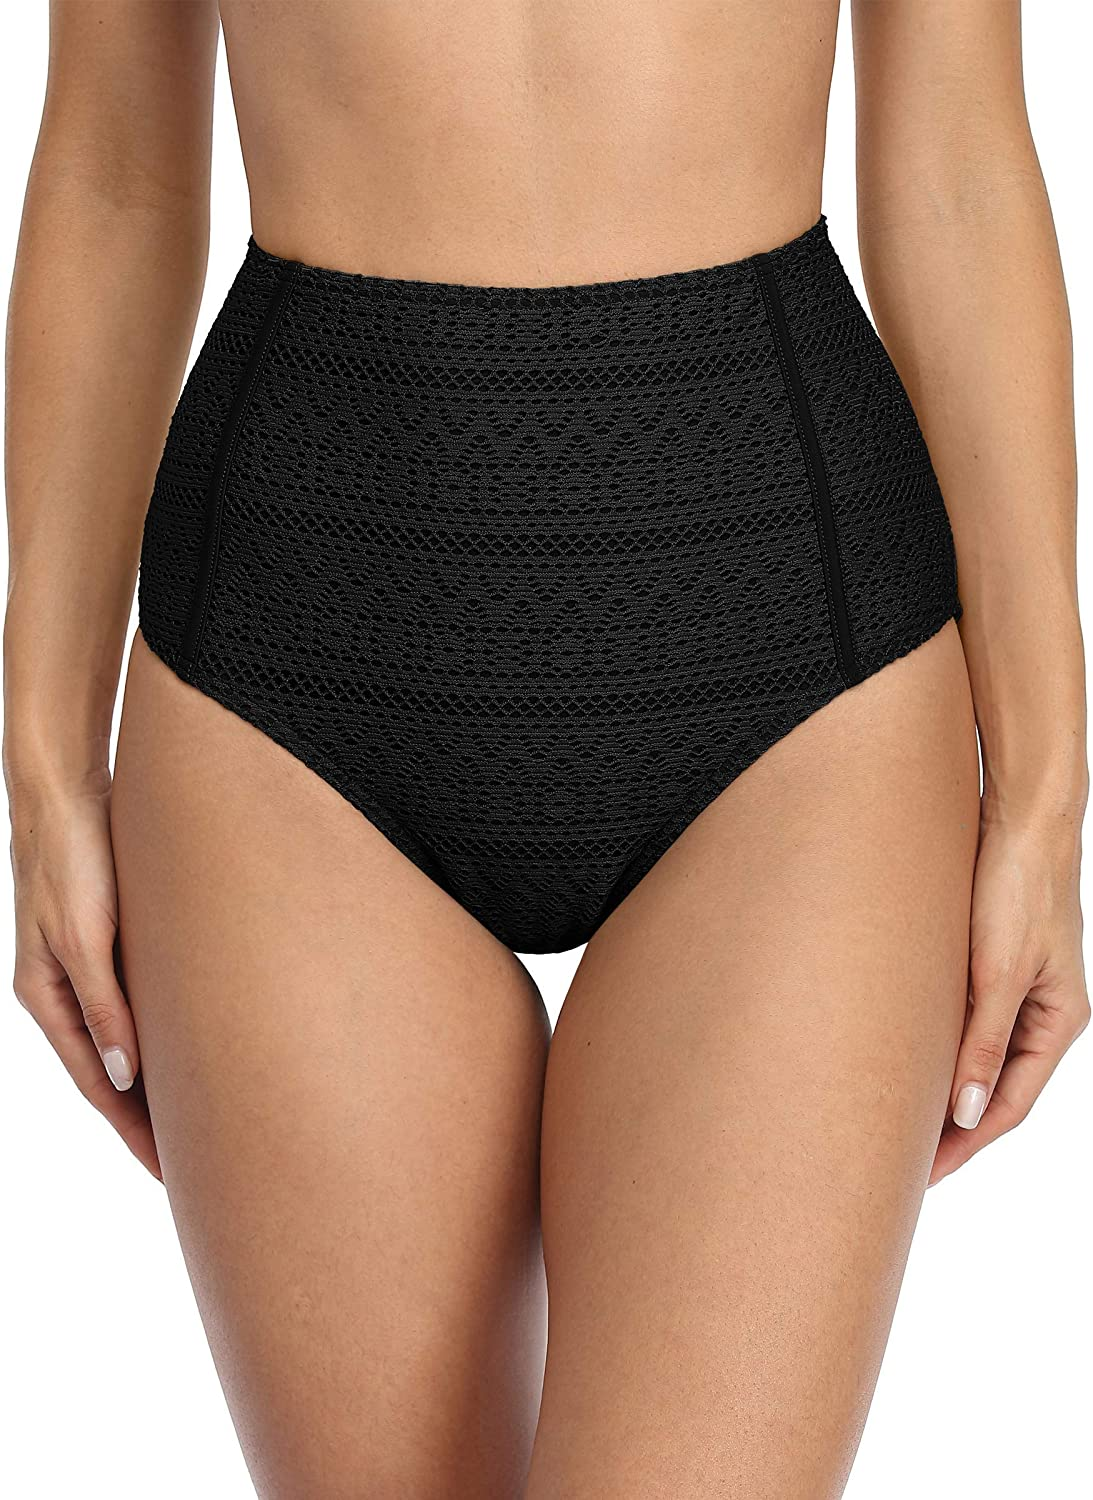 ALove Womens High Waisted Al sold out. Bikini Ruched Bottoms Full lowest price Si Coverage